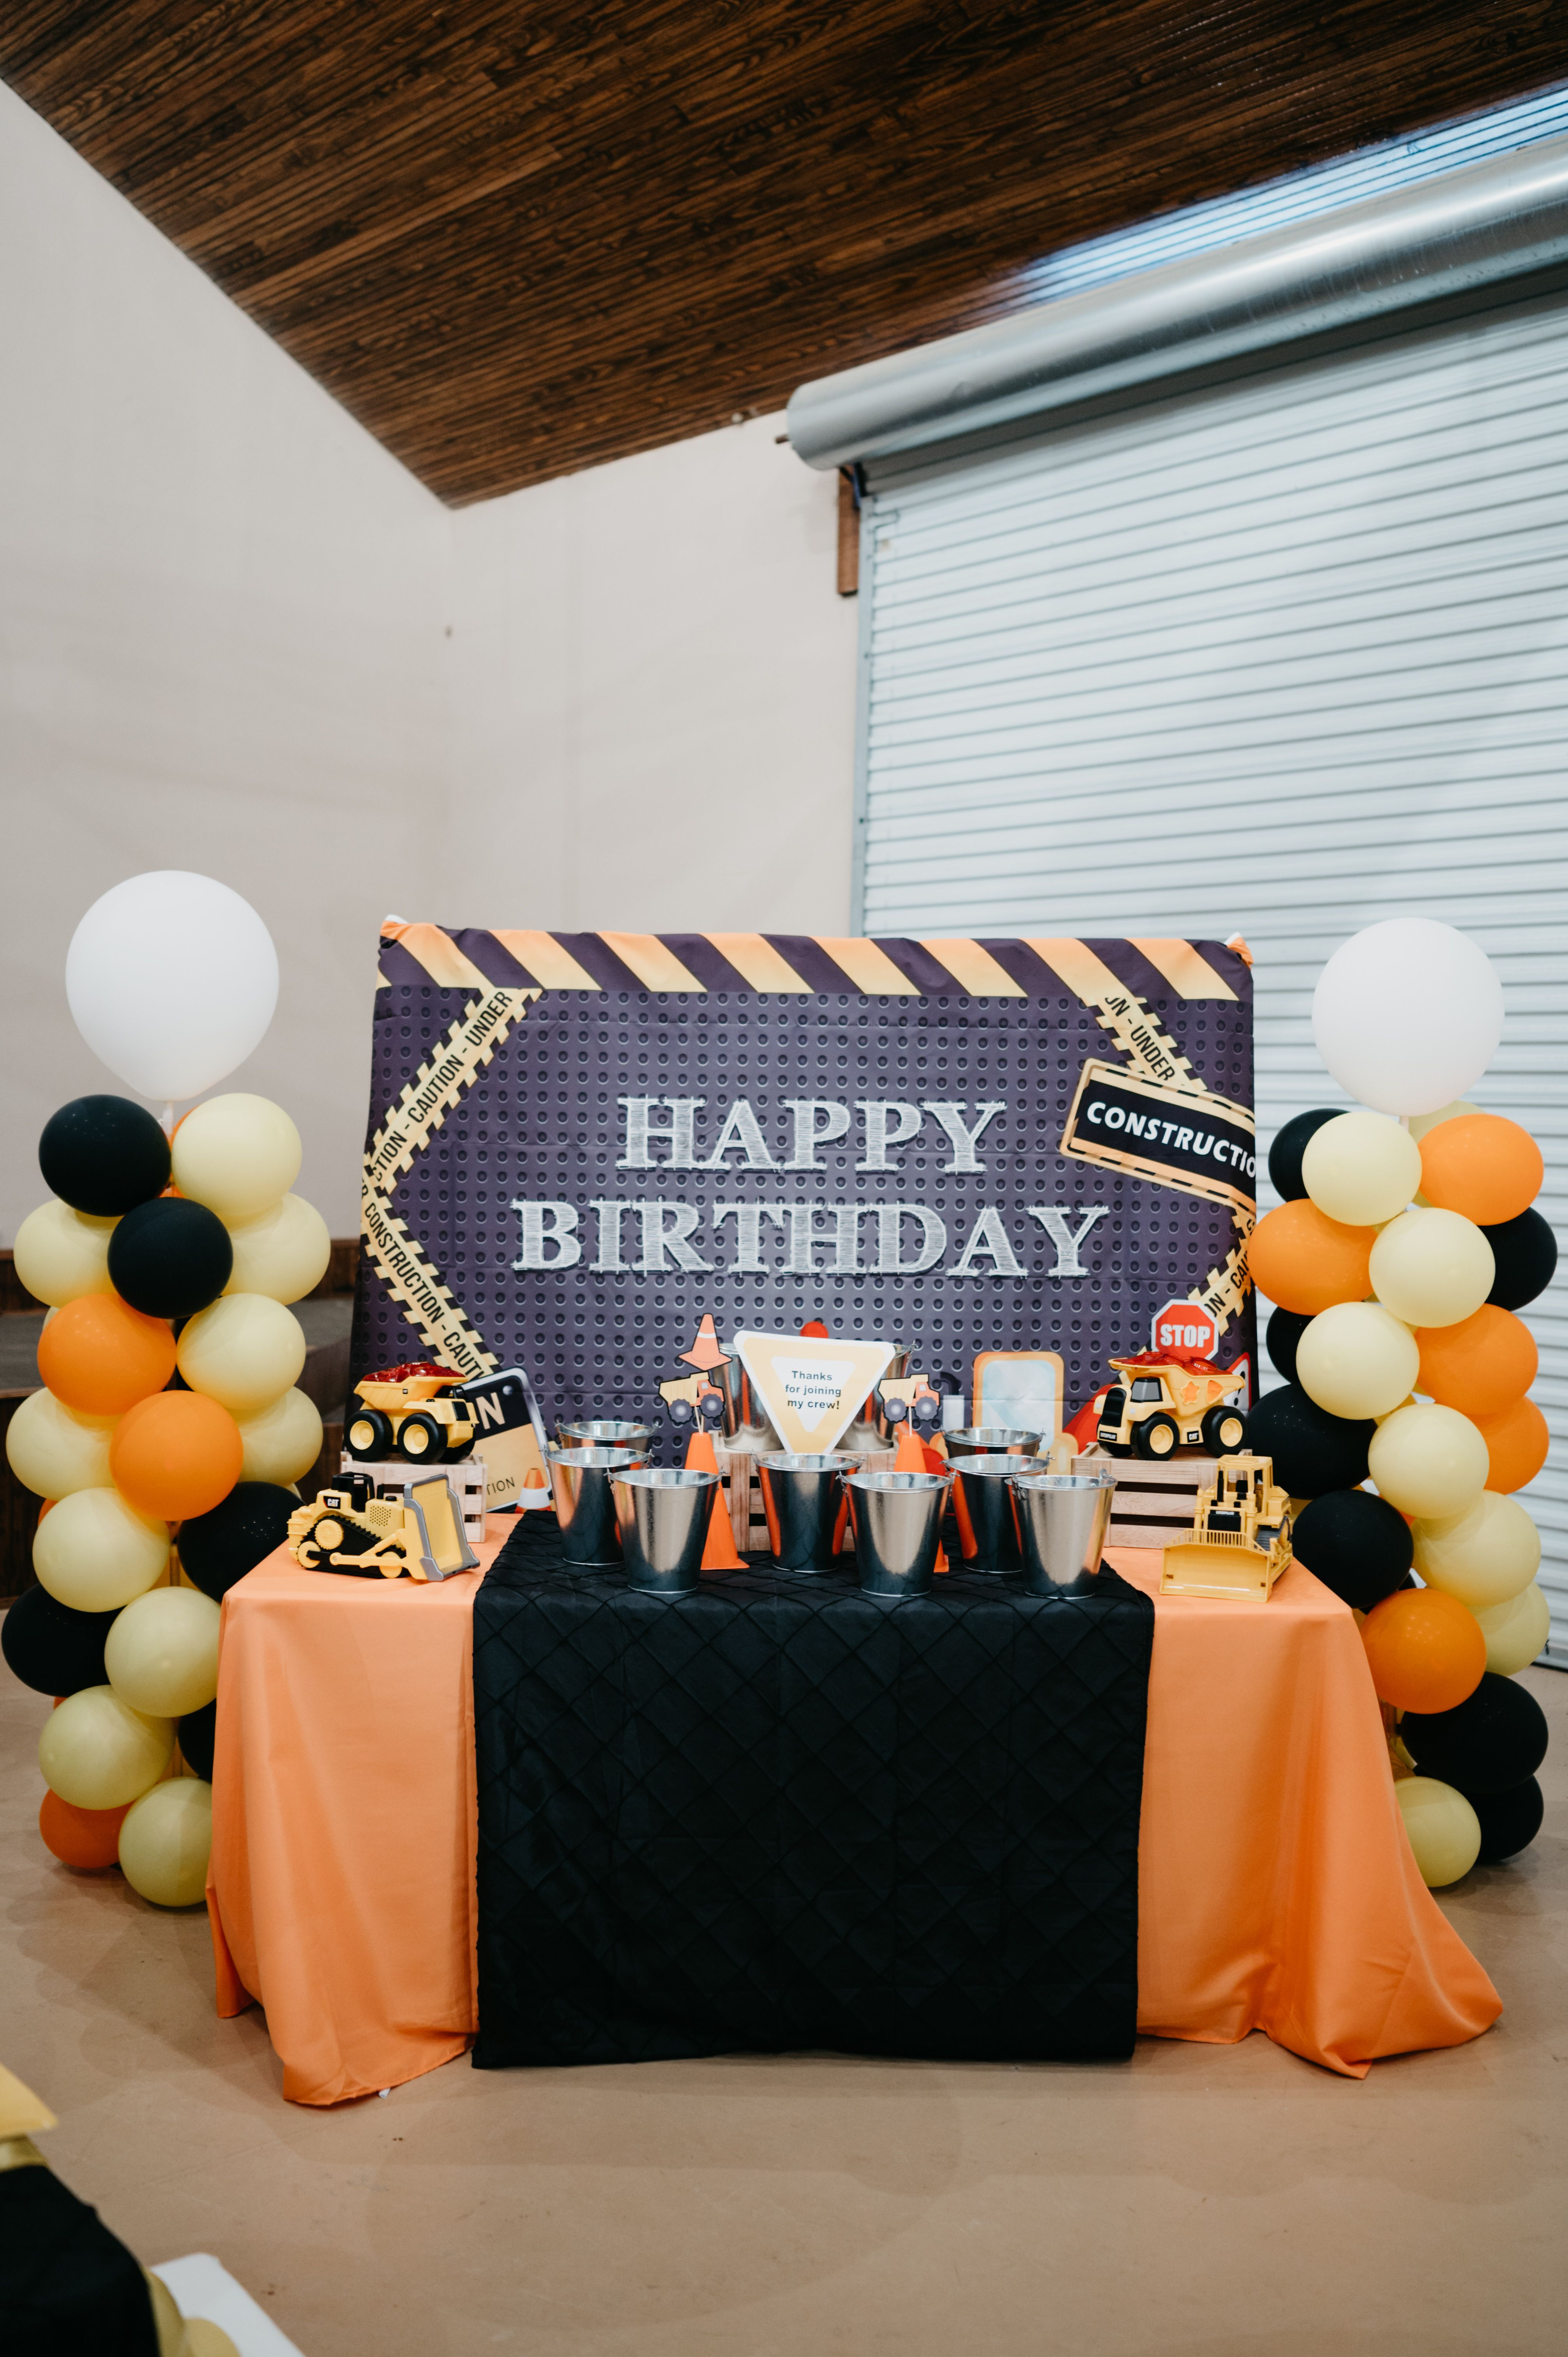 Construction kids birthday party favor table